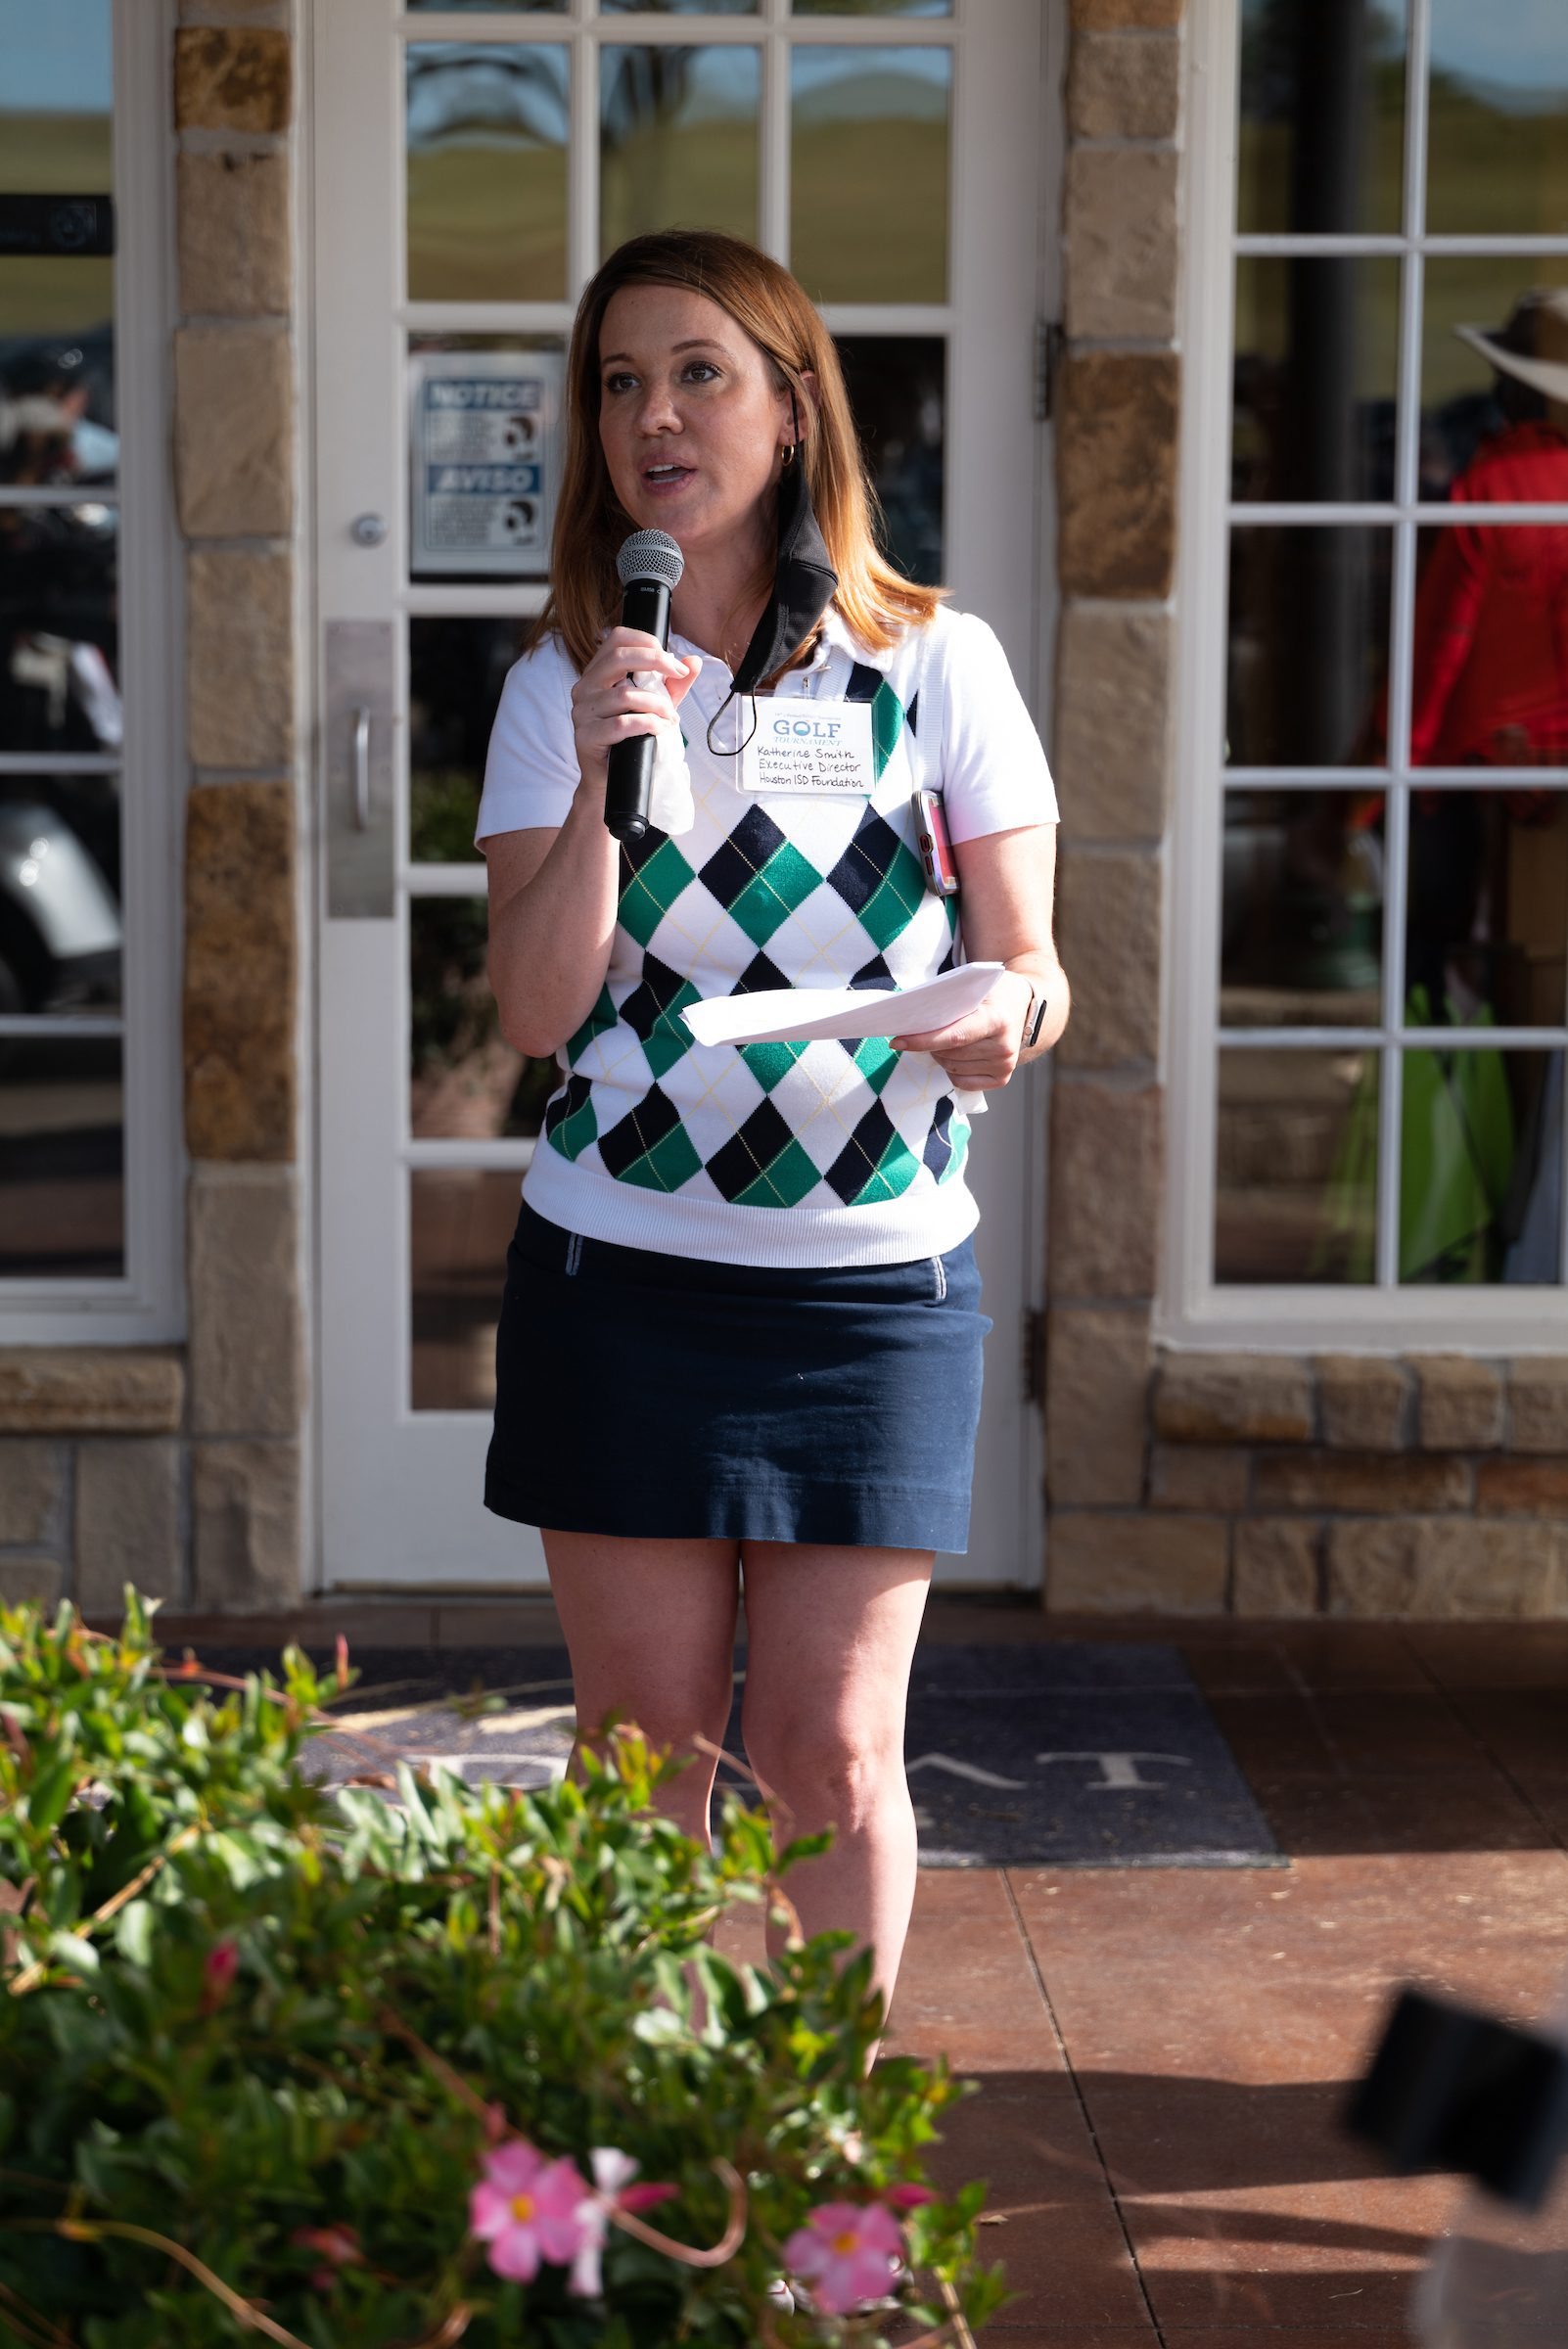 15th Annual HISD Foundation Golf Tournament gallery image #41